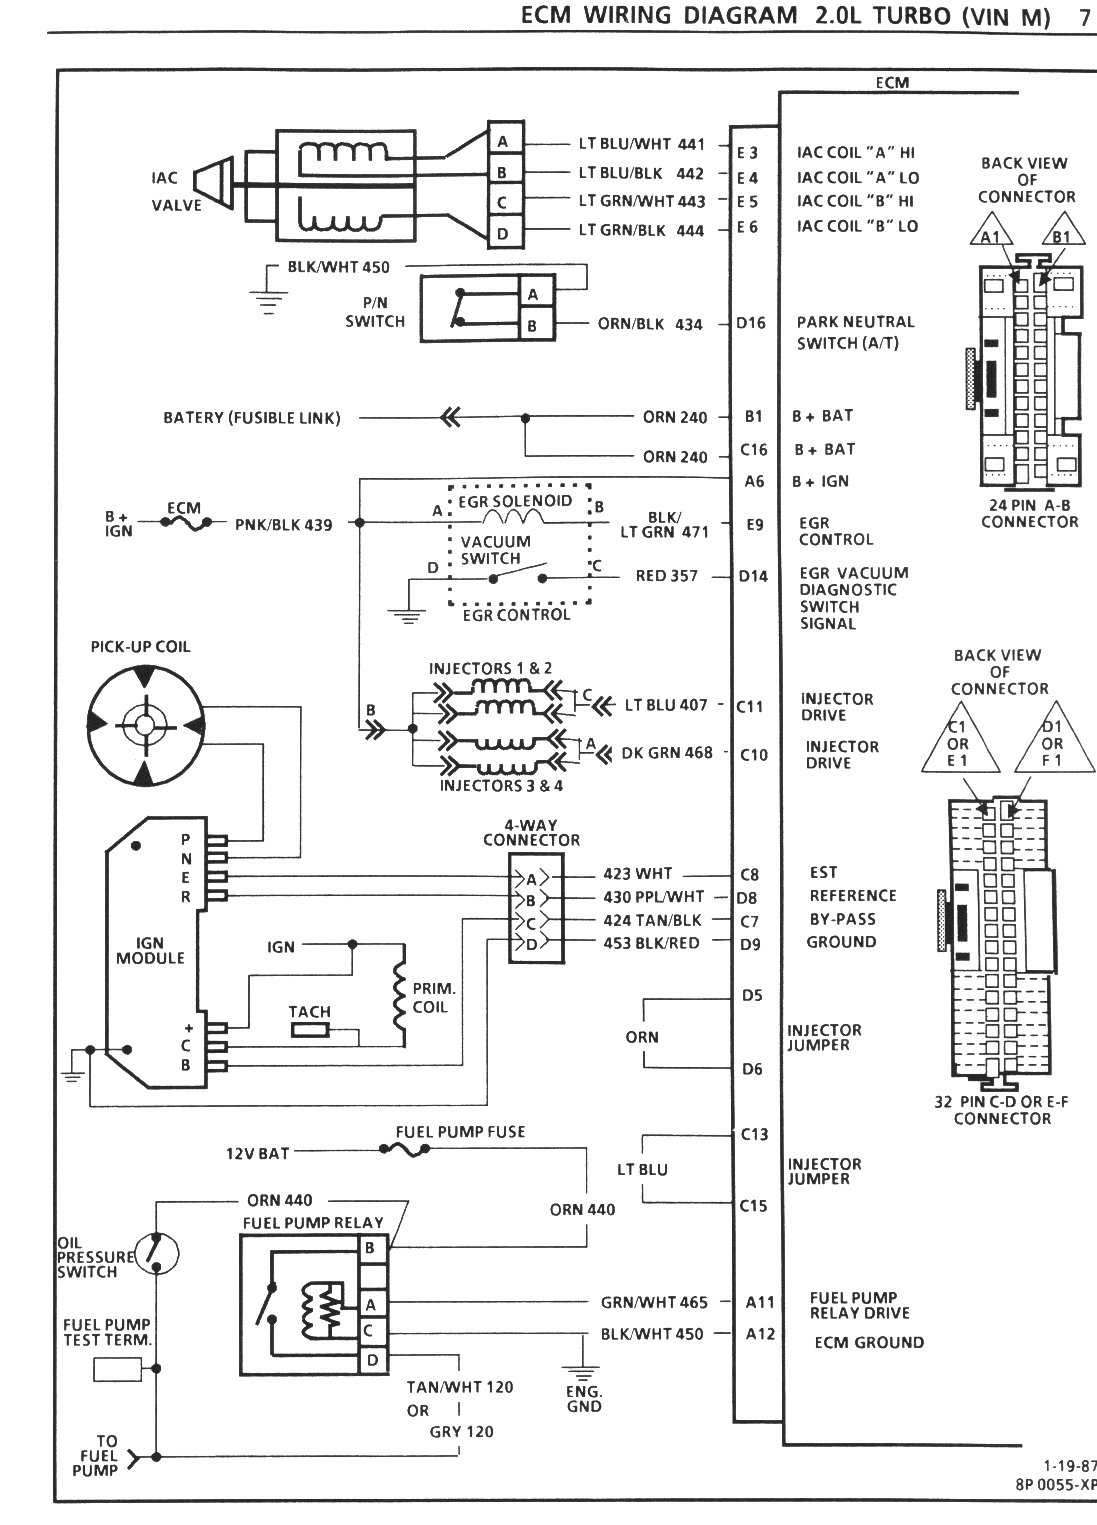 Ddec 3 ecm wiring diagram on nwstp forum DDEC 5 Schematic Detroit Diesel Electronic Controls